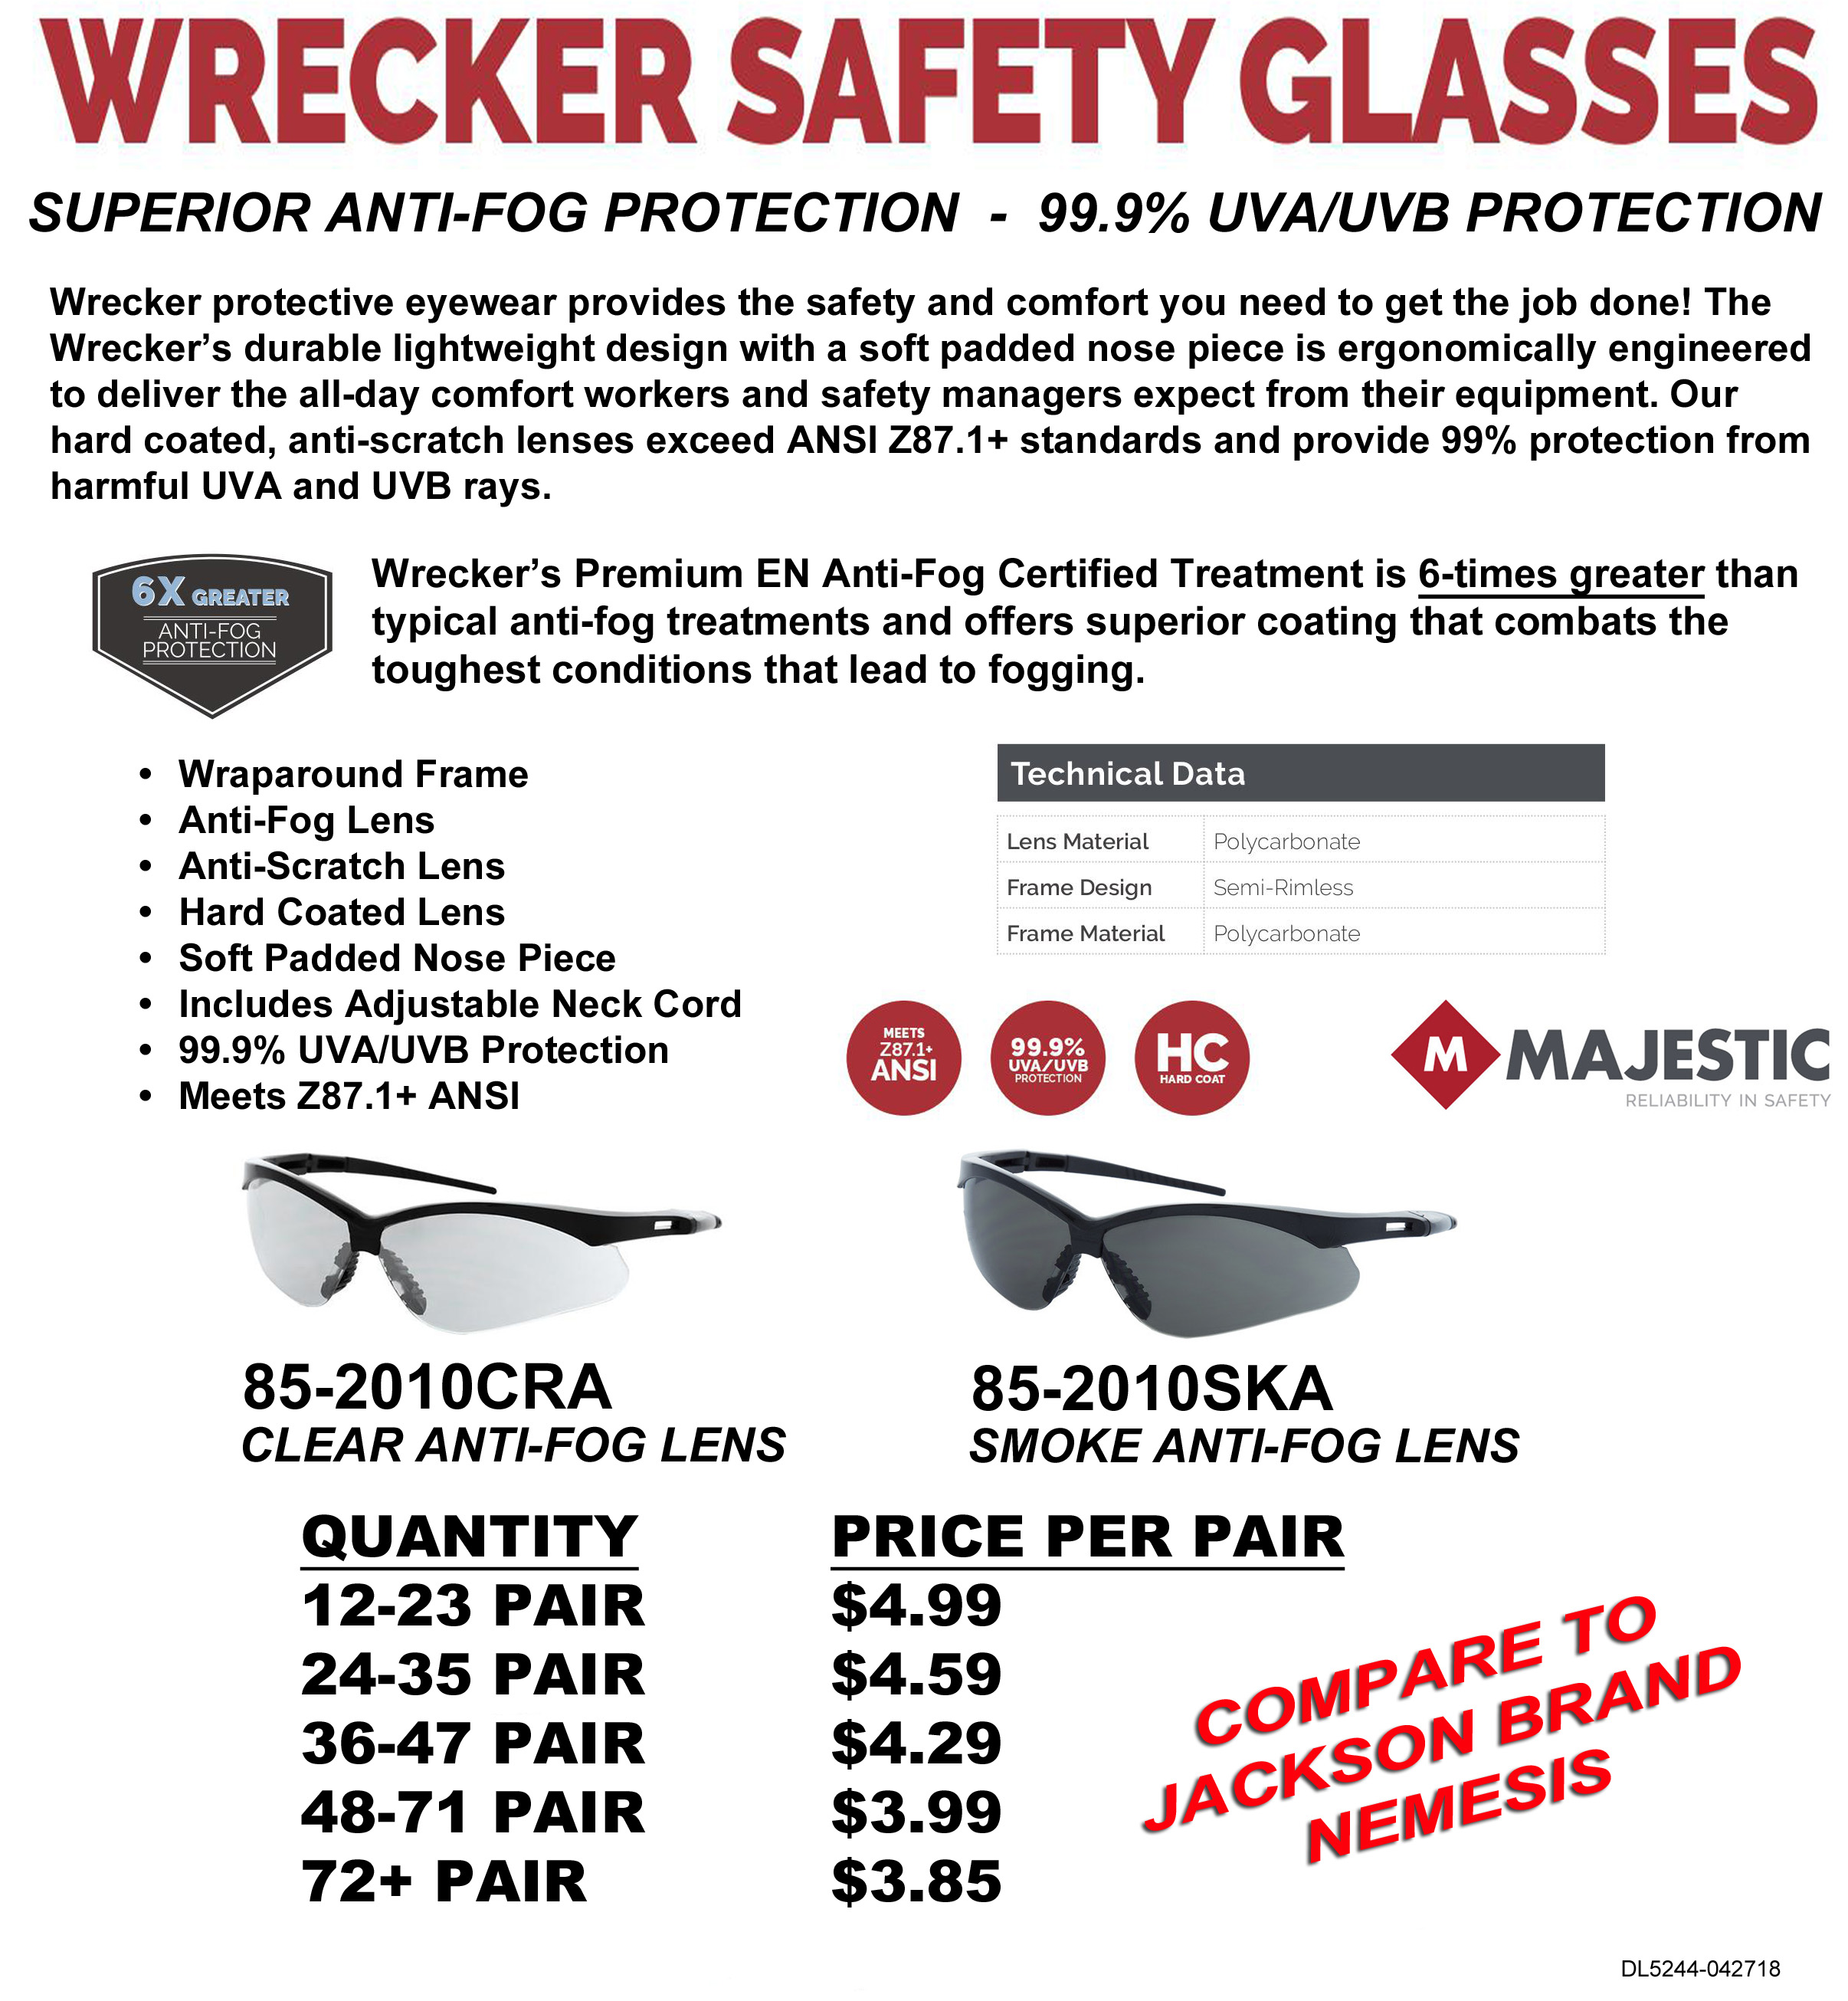 85-2010 WRECKER SAFETY GLASSES